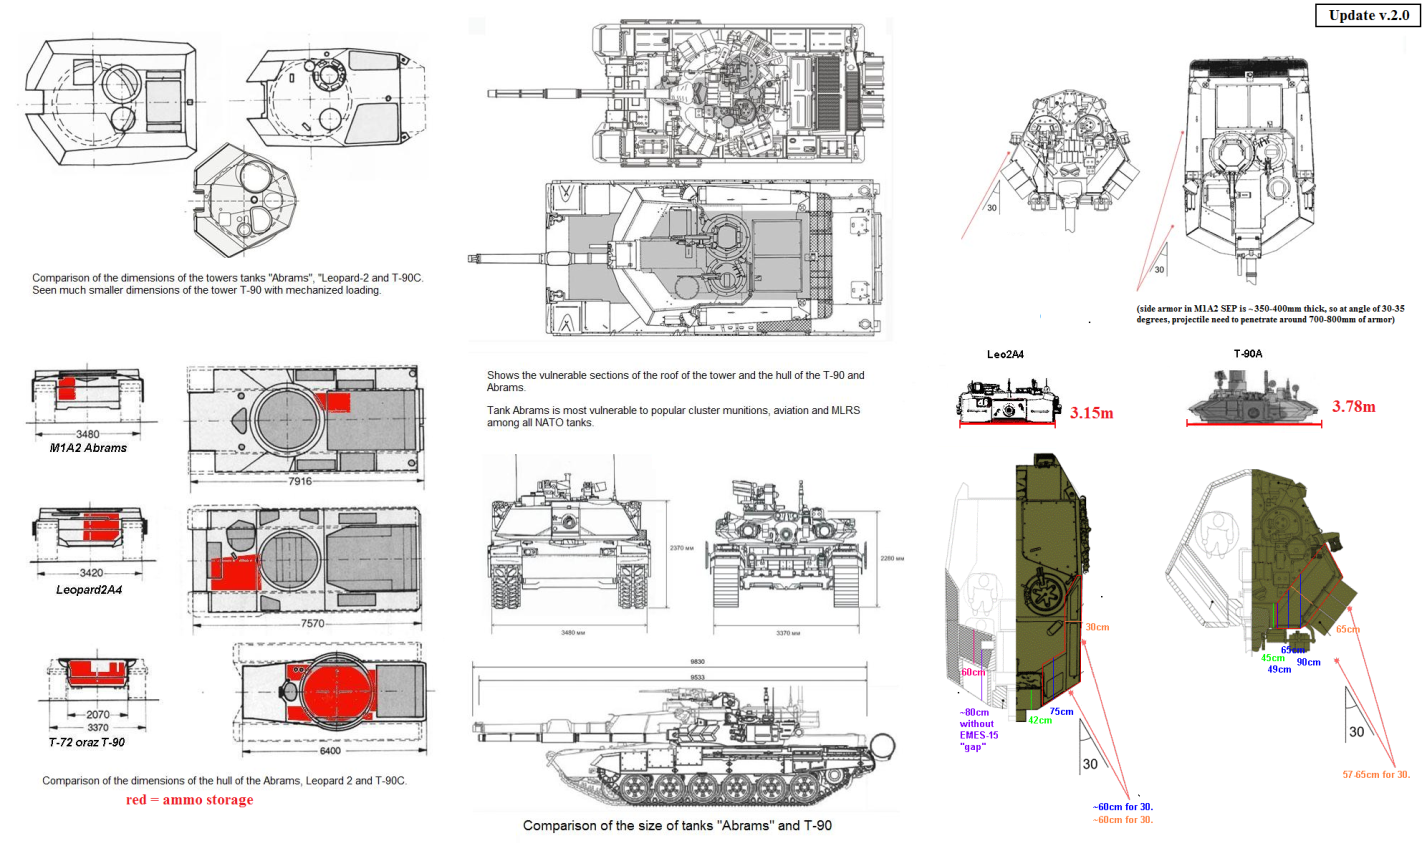 Heavy Metal A Comparison Of Russian And Western Armour The Merkava Tank Schematic Fcloudstationsakerheavymetalcomparison Abrams T90 Leopard Update2